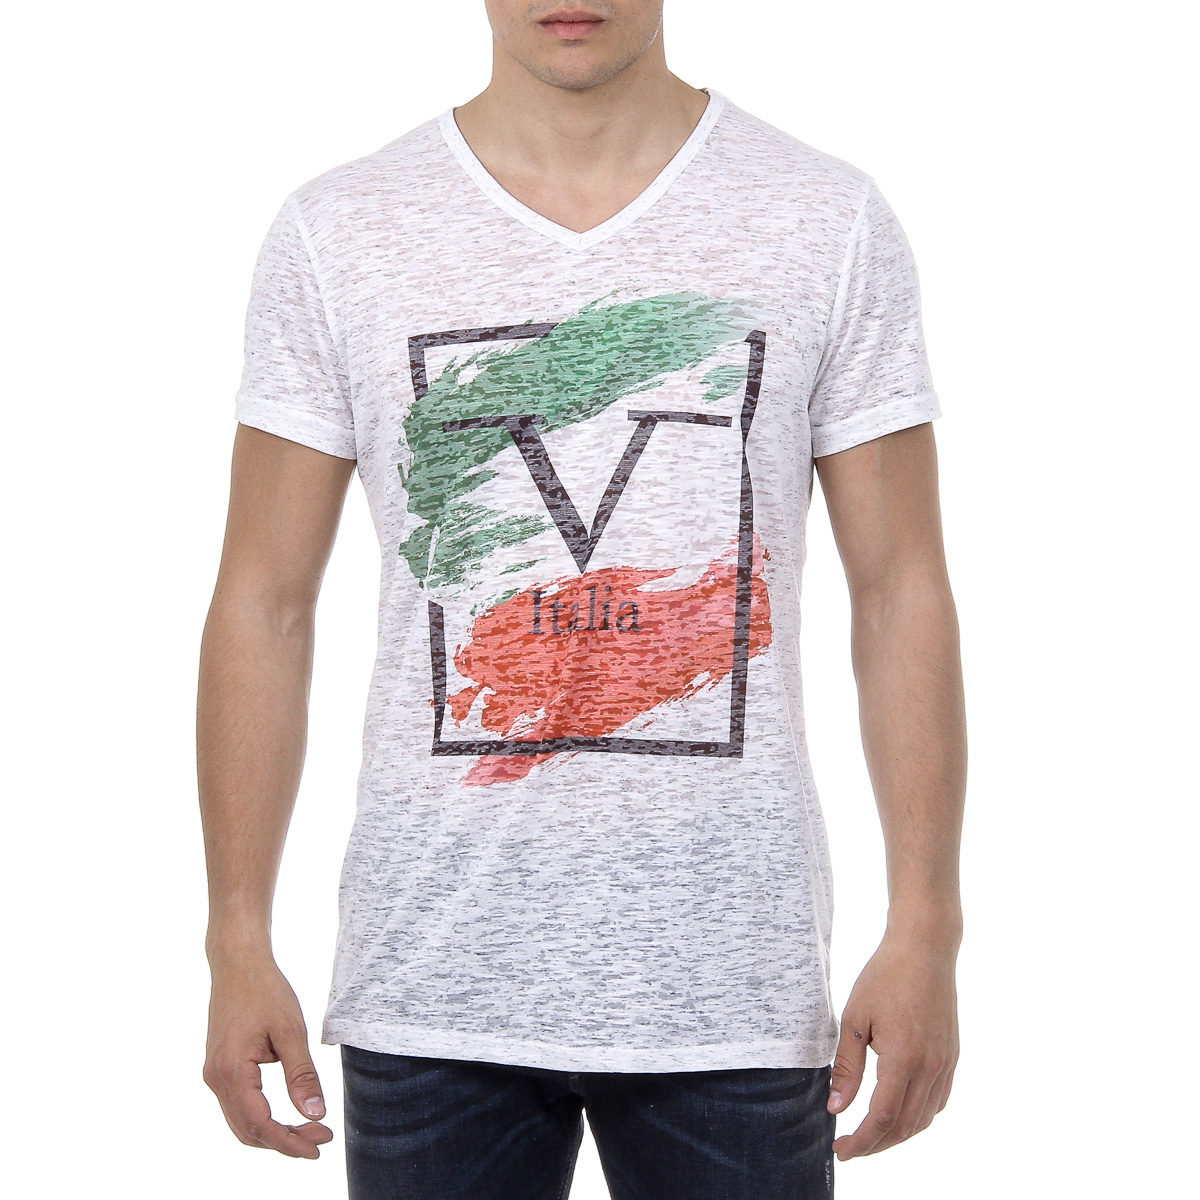 Primary image for V 1969 Italia Mens T-shirt Short Sleeves V-Neck White LUCAS